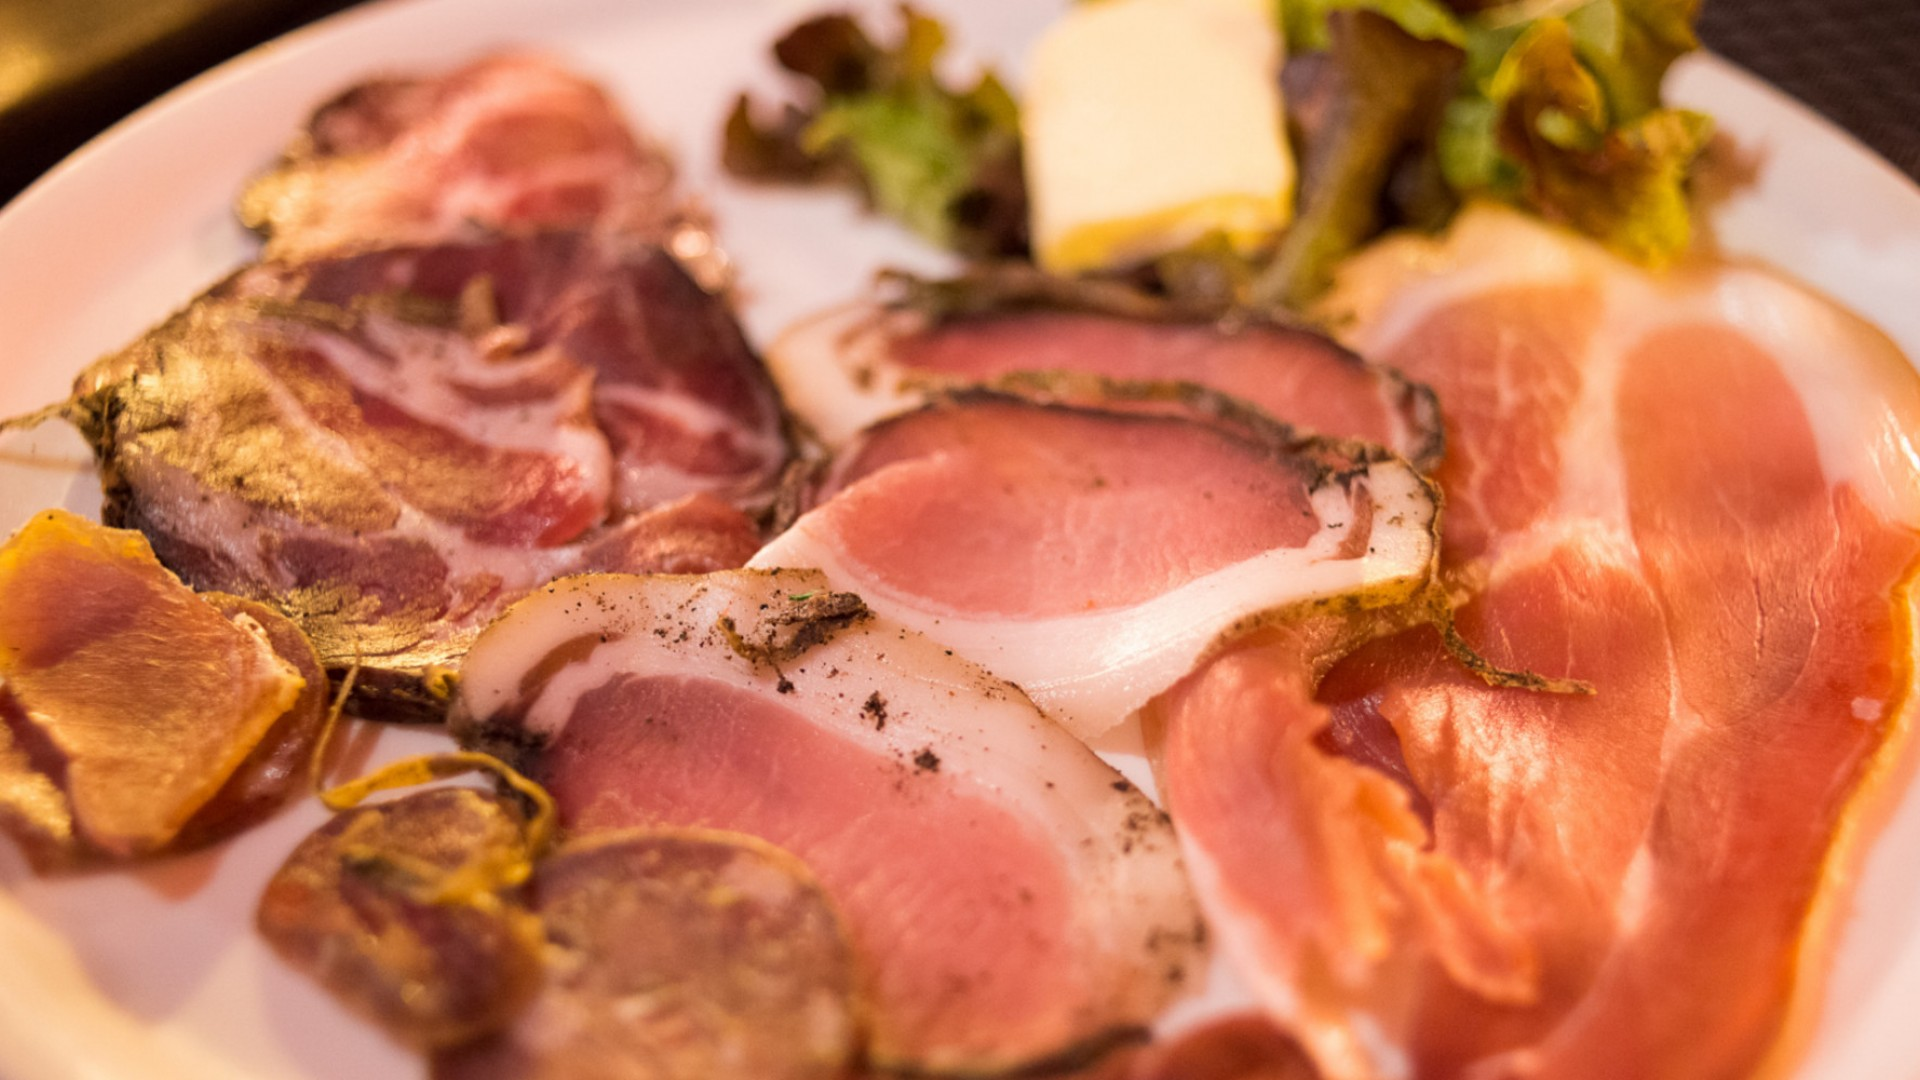 plate of cured meats